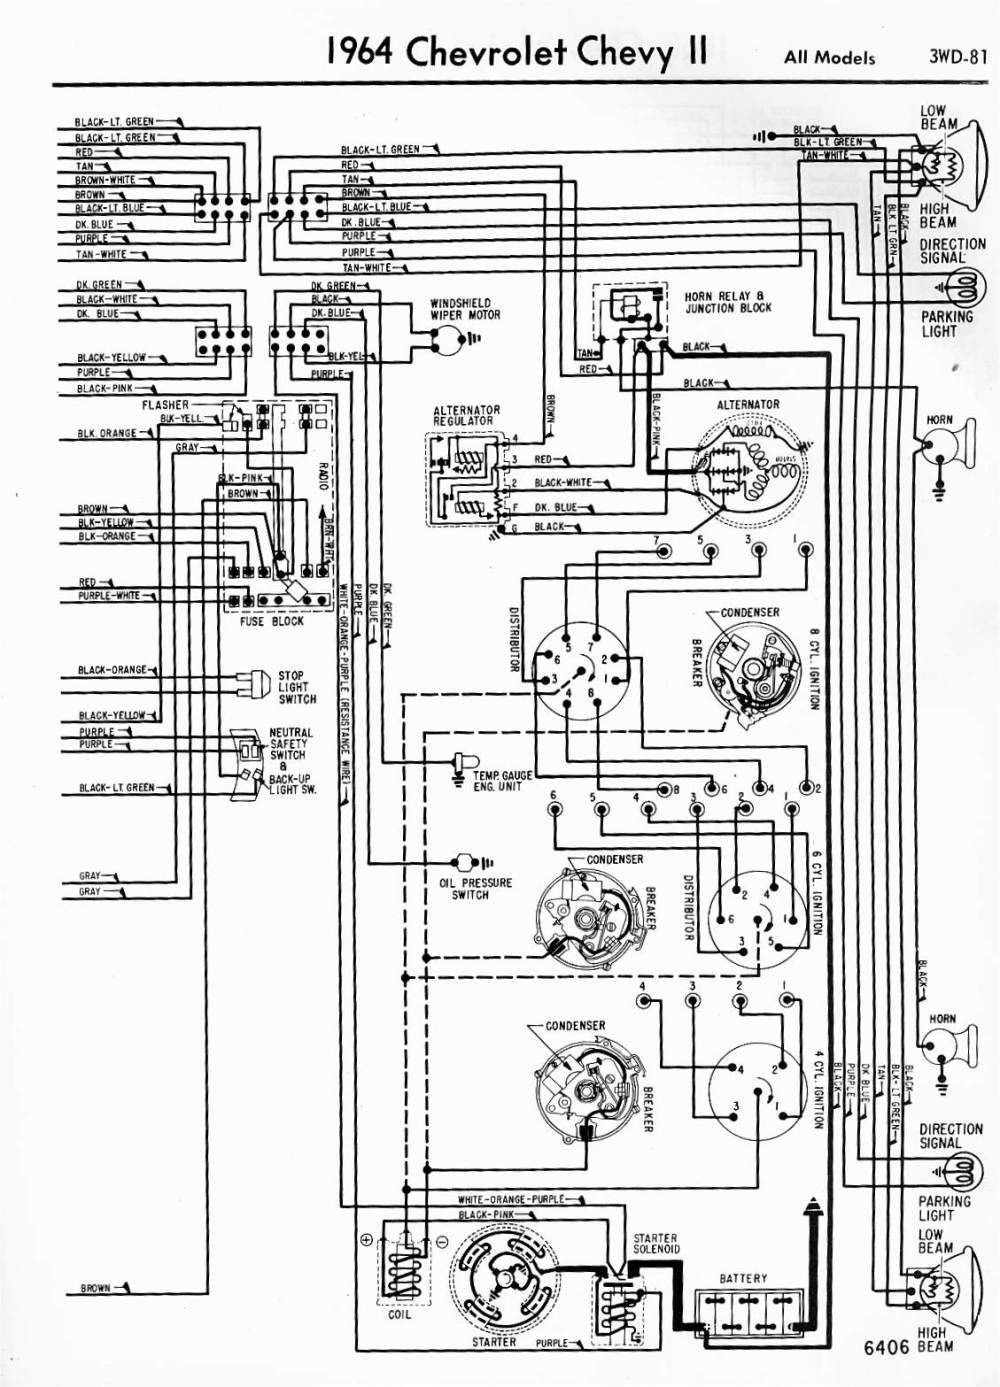 medium resolution of 1964 gmc truck electrical system wiring diagram wiring library 1964 chevy ii all models